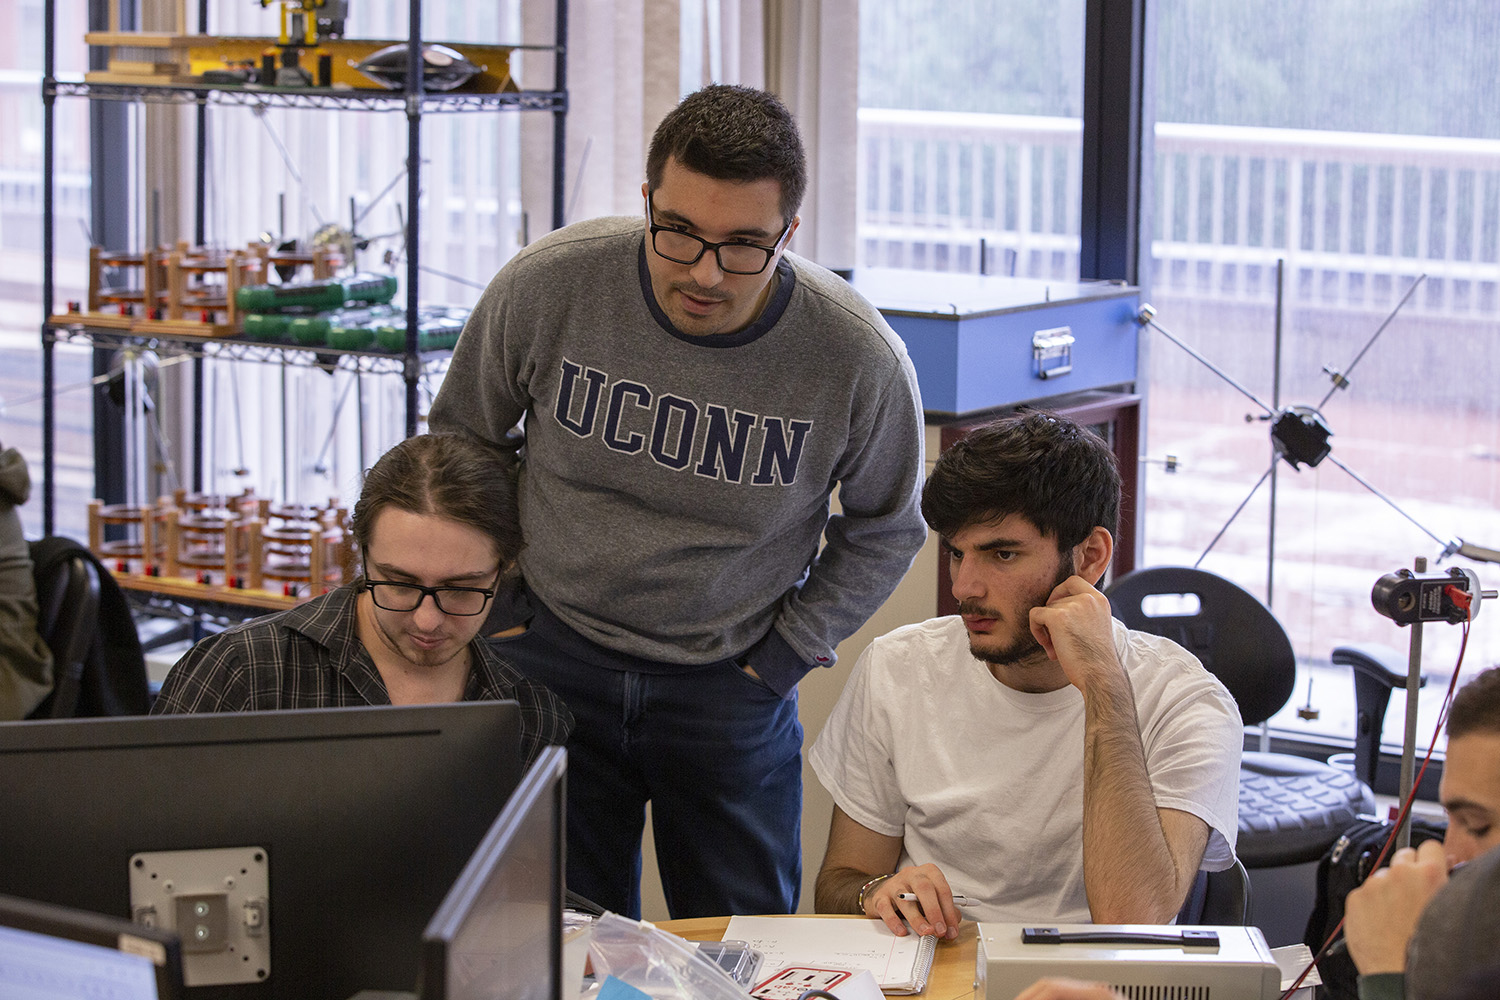 Graduate teaching assistant Lukasz Kuna instructs PHYS 1602: Fundamentals of Physics II in a new Studio Learning Lab located in the Gant Science Complex on November 5, 2018. (Bri Diaz/UConn Photo)